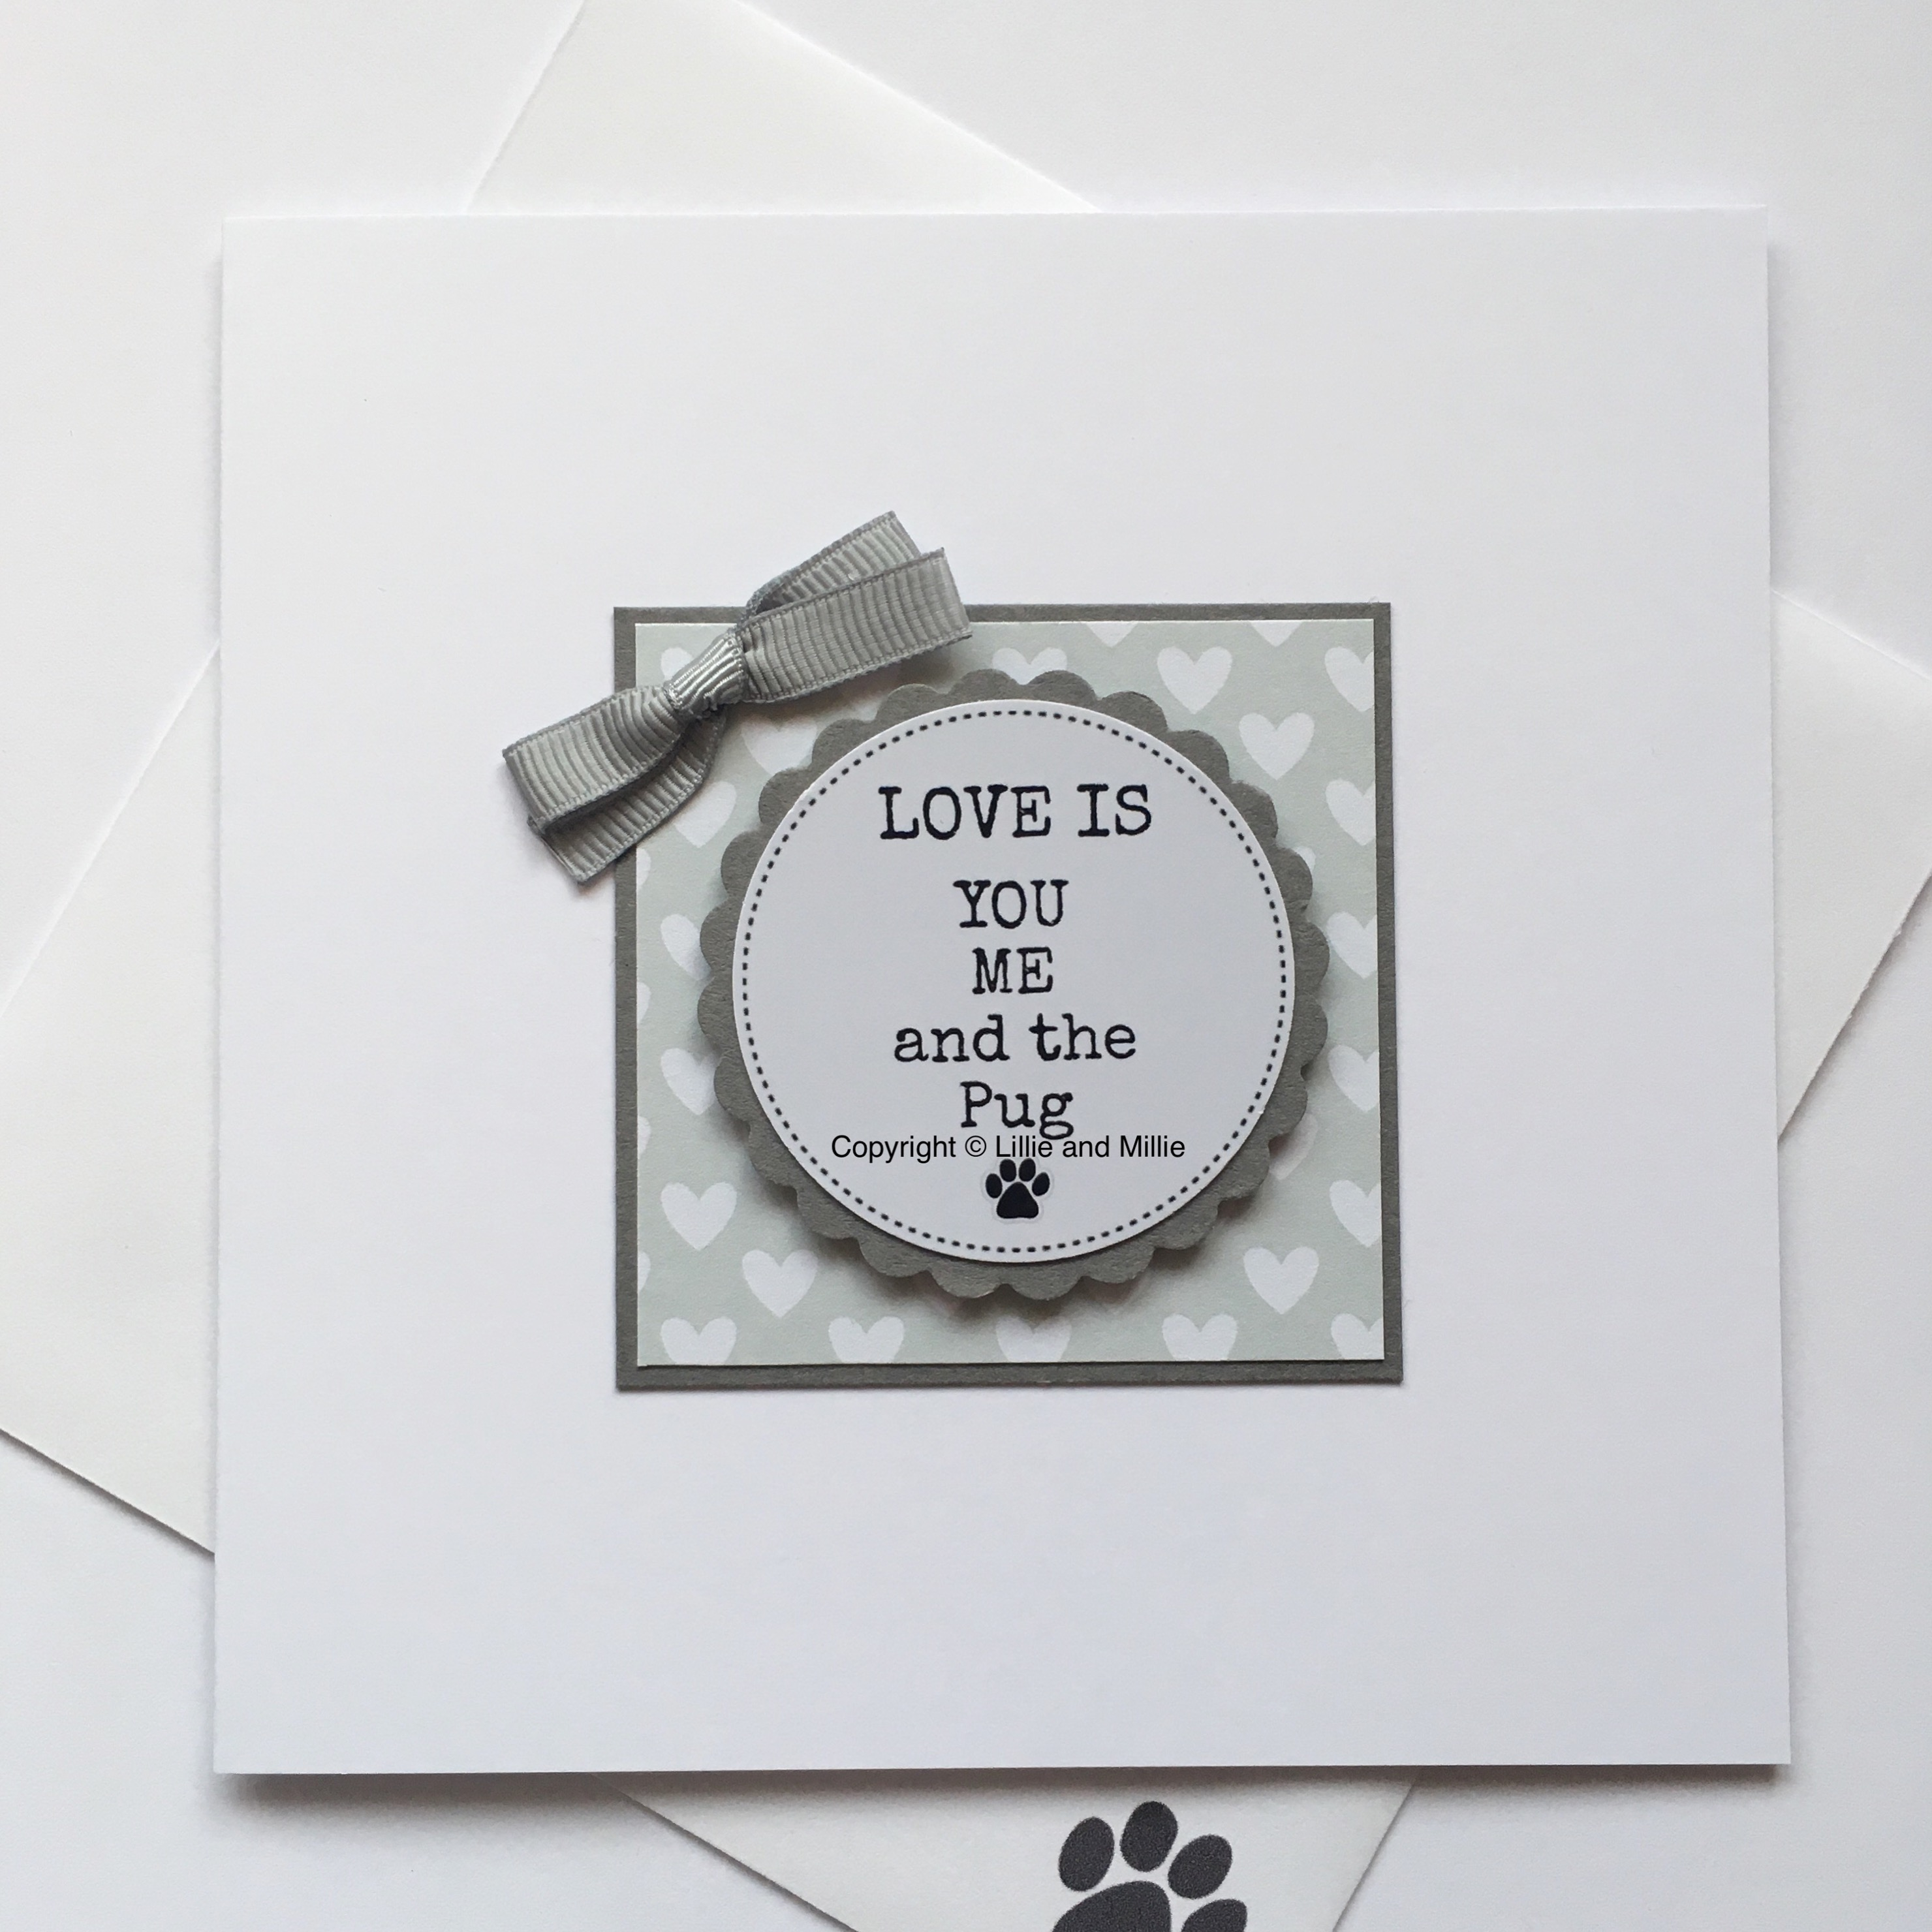 Love is You Me and the Pug Mint Card